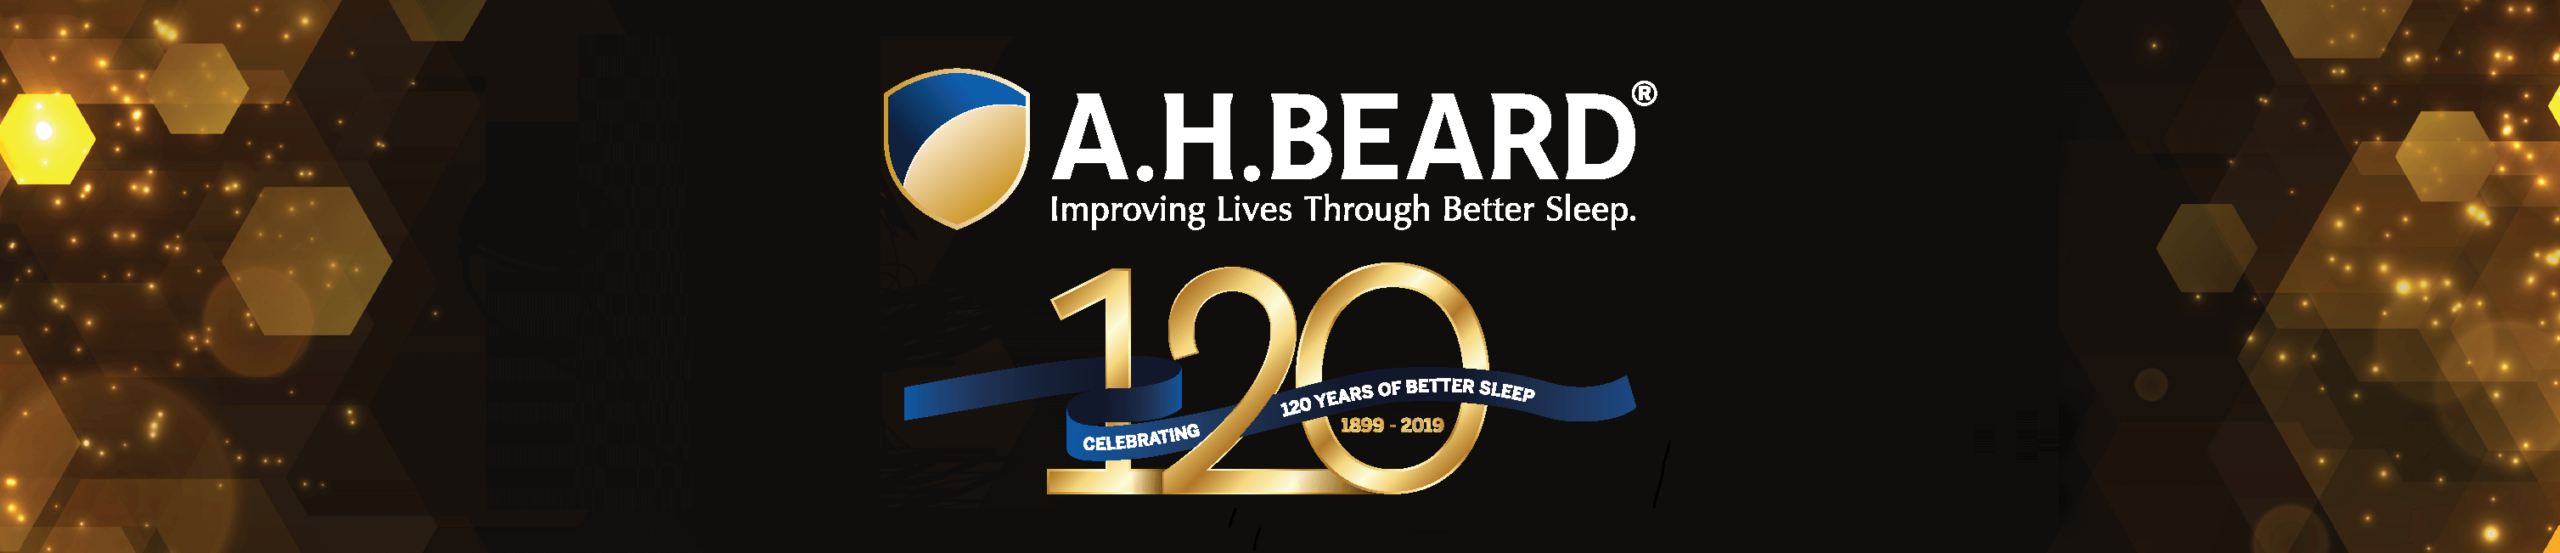 AH Beard 120 Years